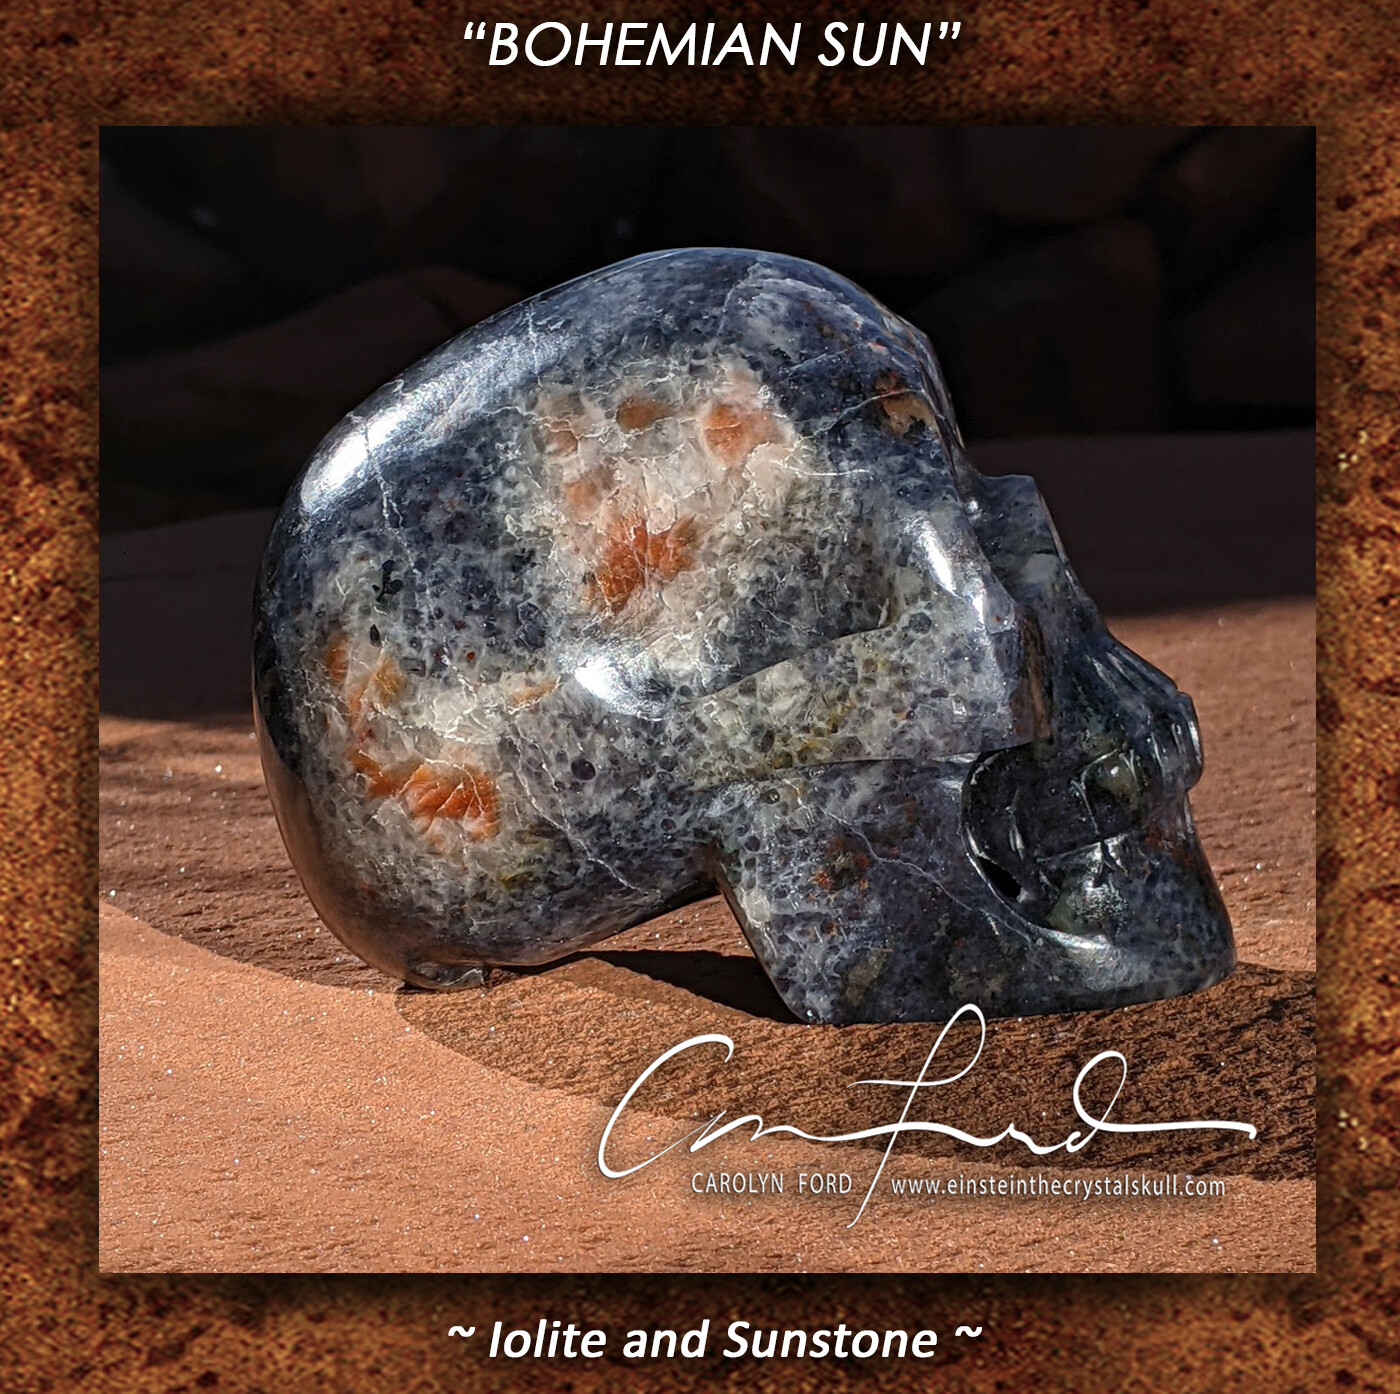 Sunstone and Iolite,  Einstein the Ancient Crystal  Skull Imprinted,